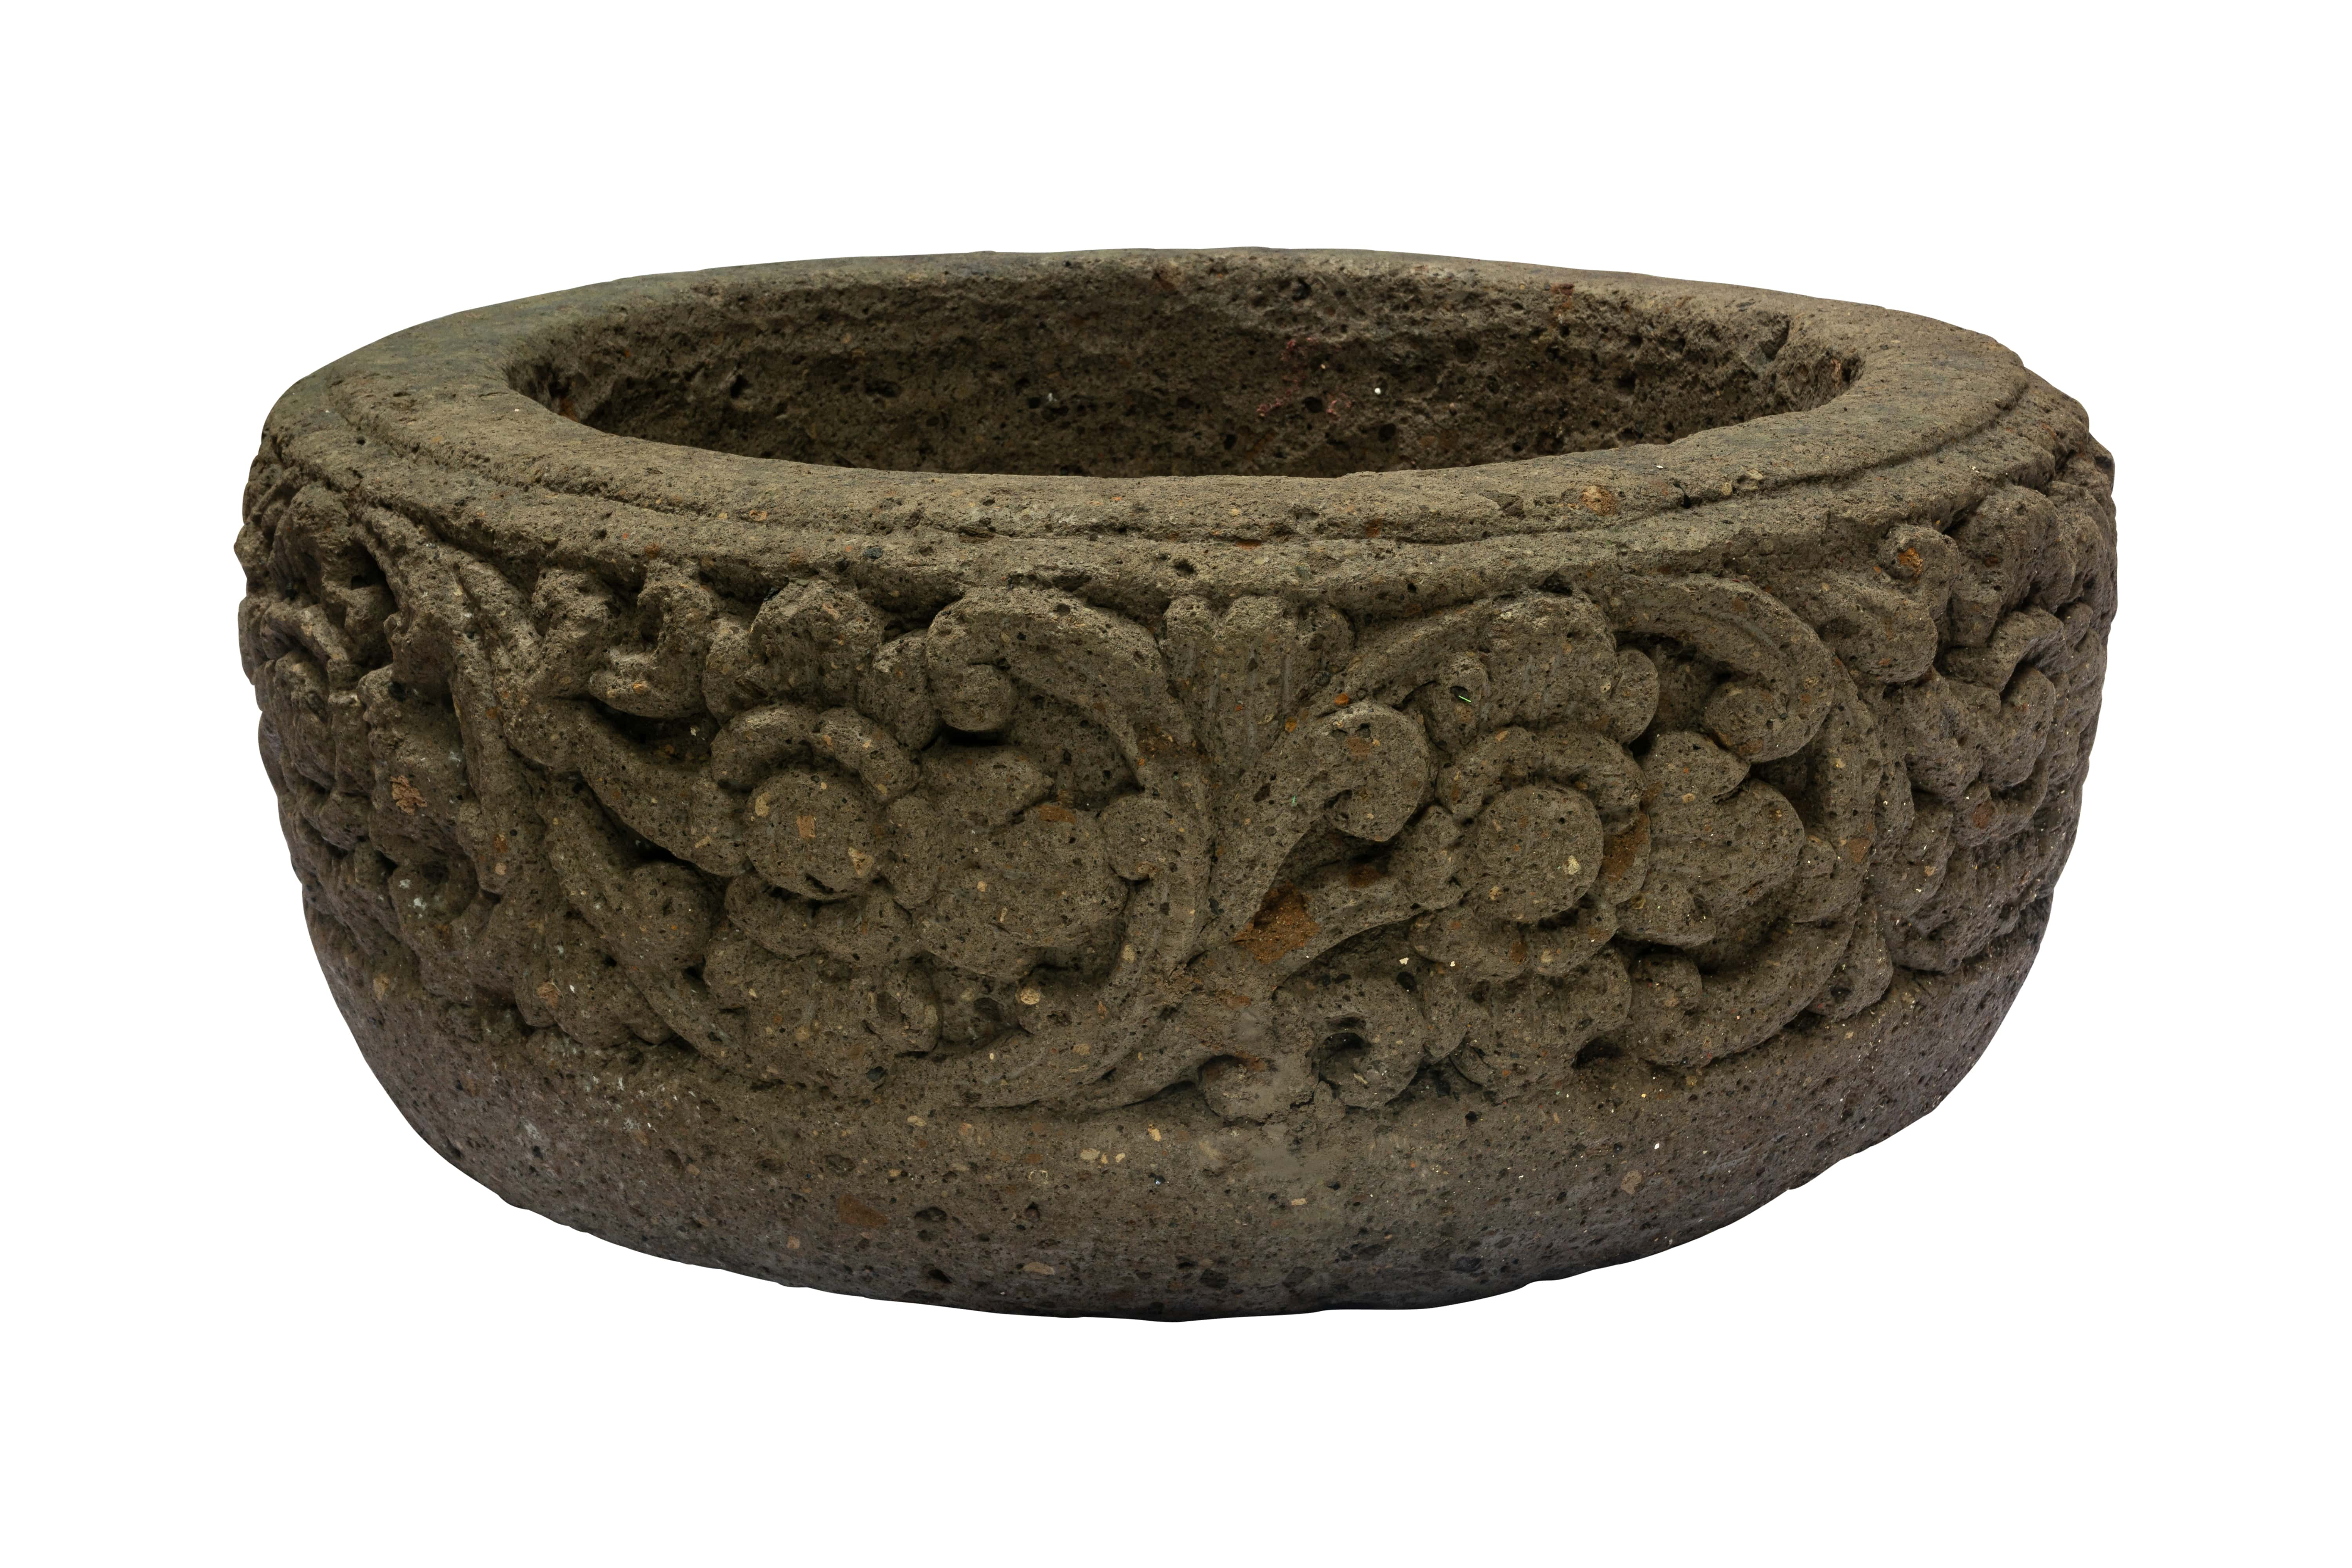 Pot carved in stone with floral design